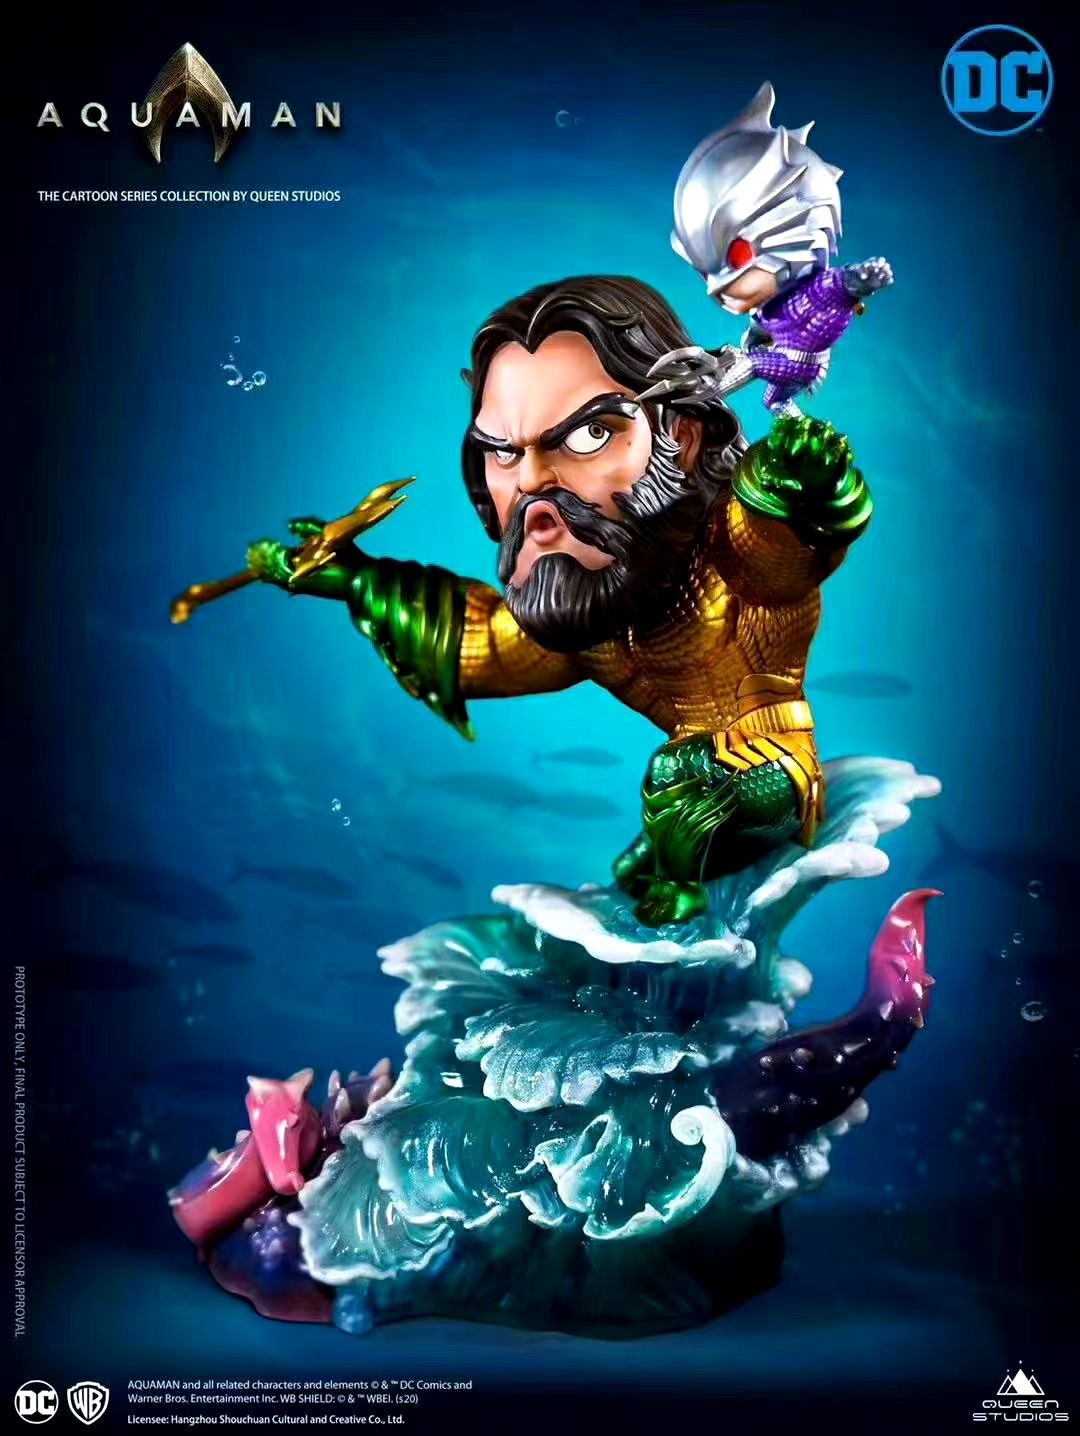 SD Aquaman Queen Studio (มัดจำ)